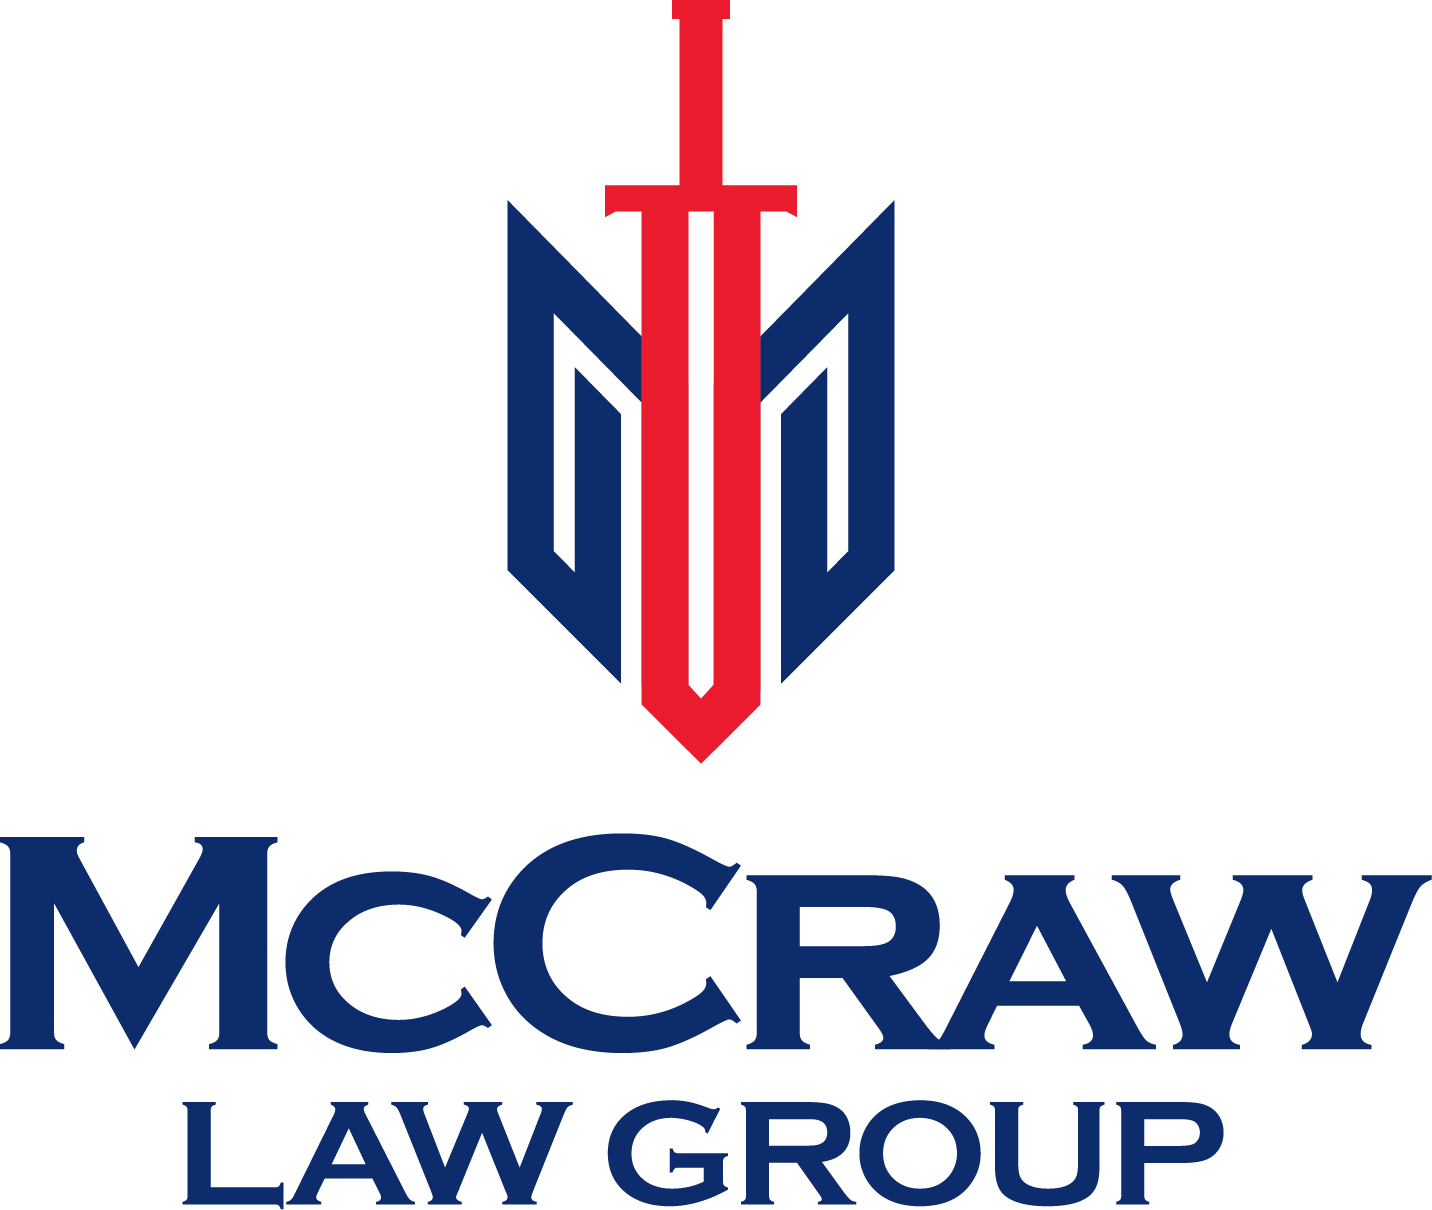 The McCraw Law Group reviews | 1504 1st Ave - Mckinney TX